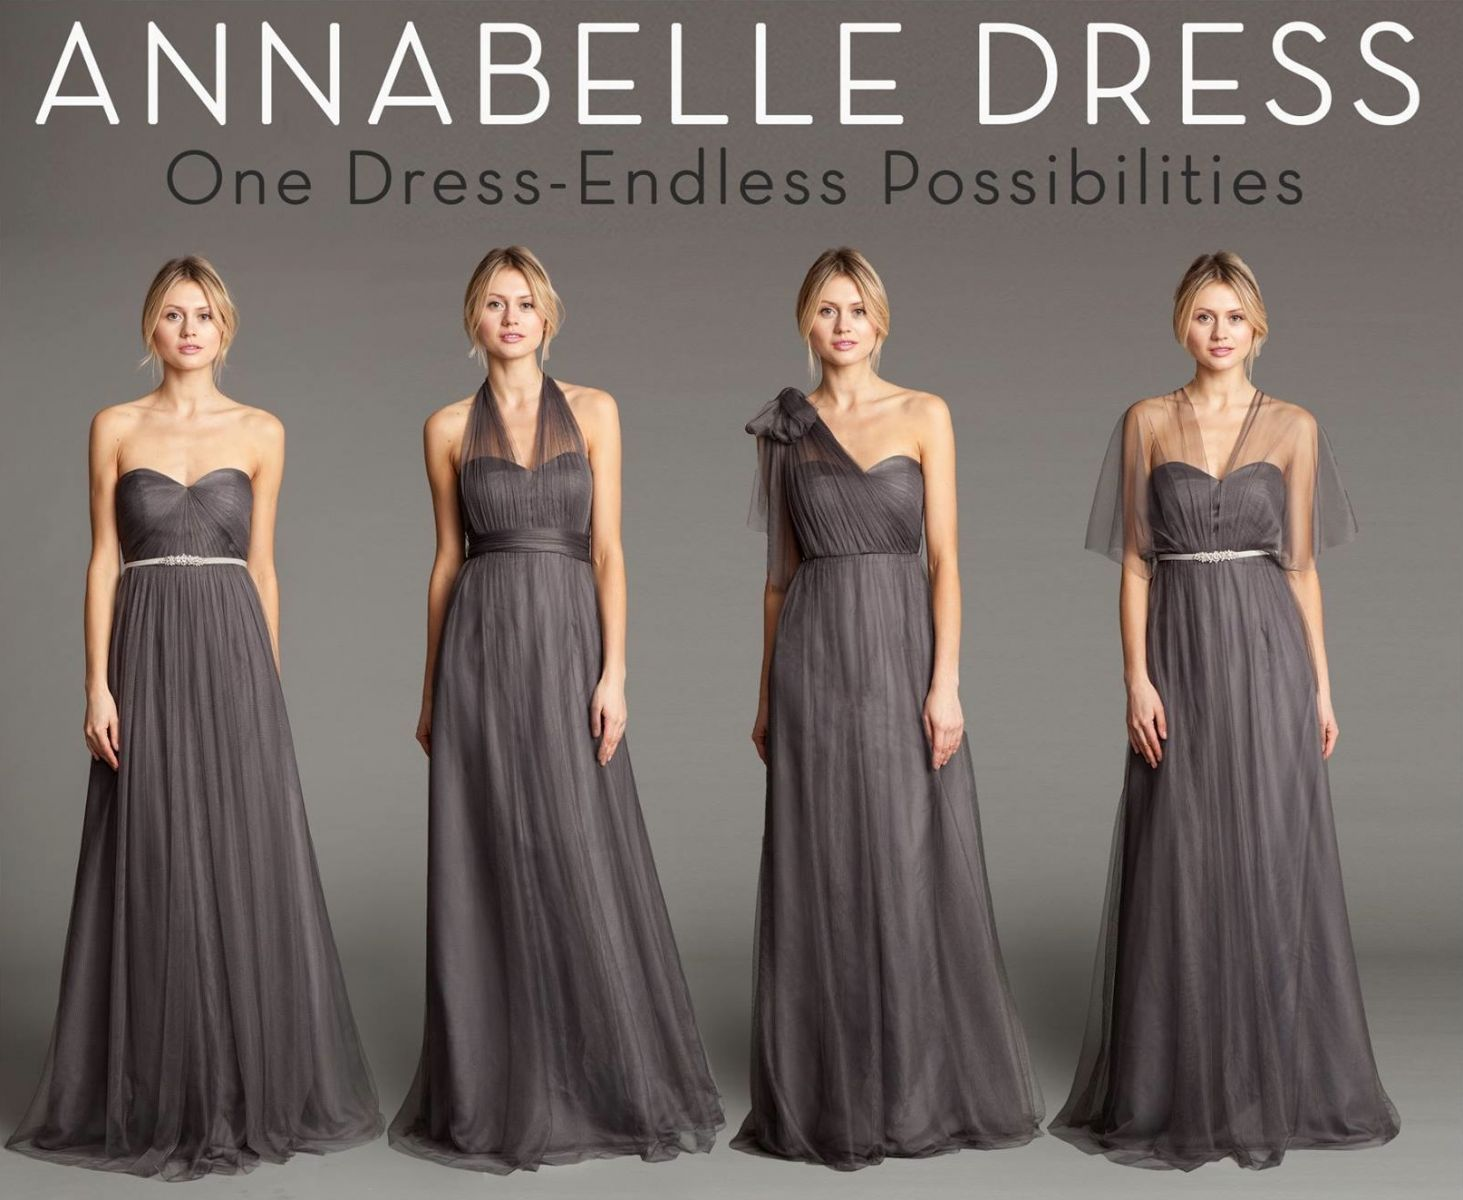 Convertible tulle dress google search dresses pinterest convertible tulle dress google search ombrellifo Image collections